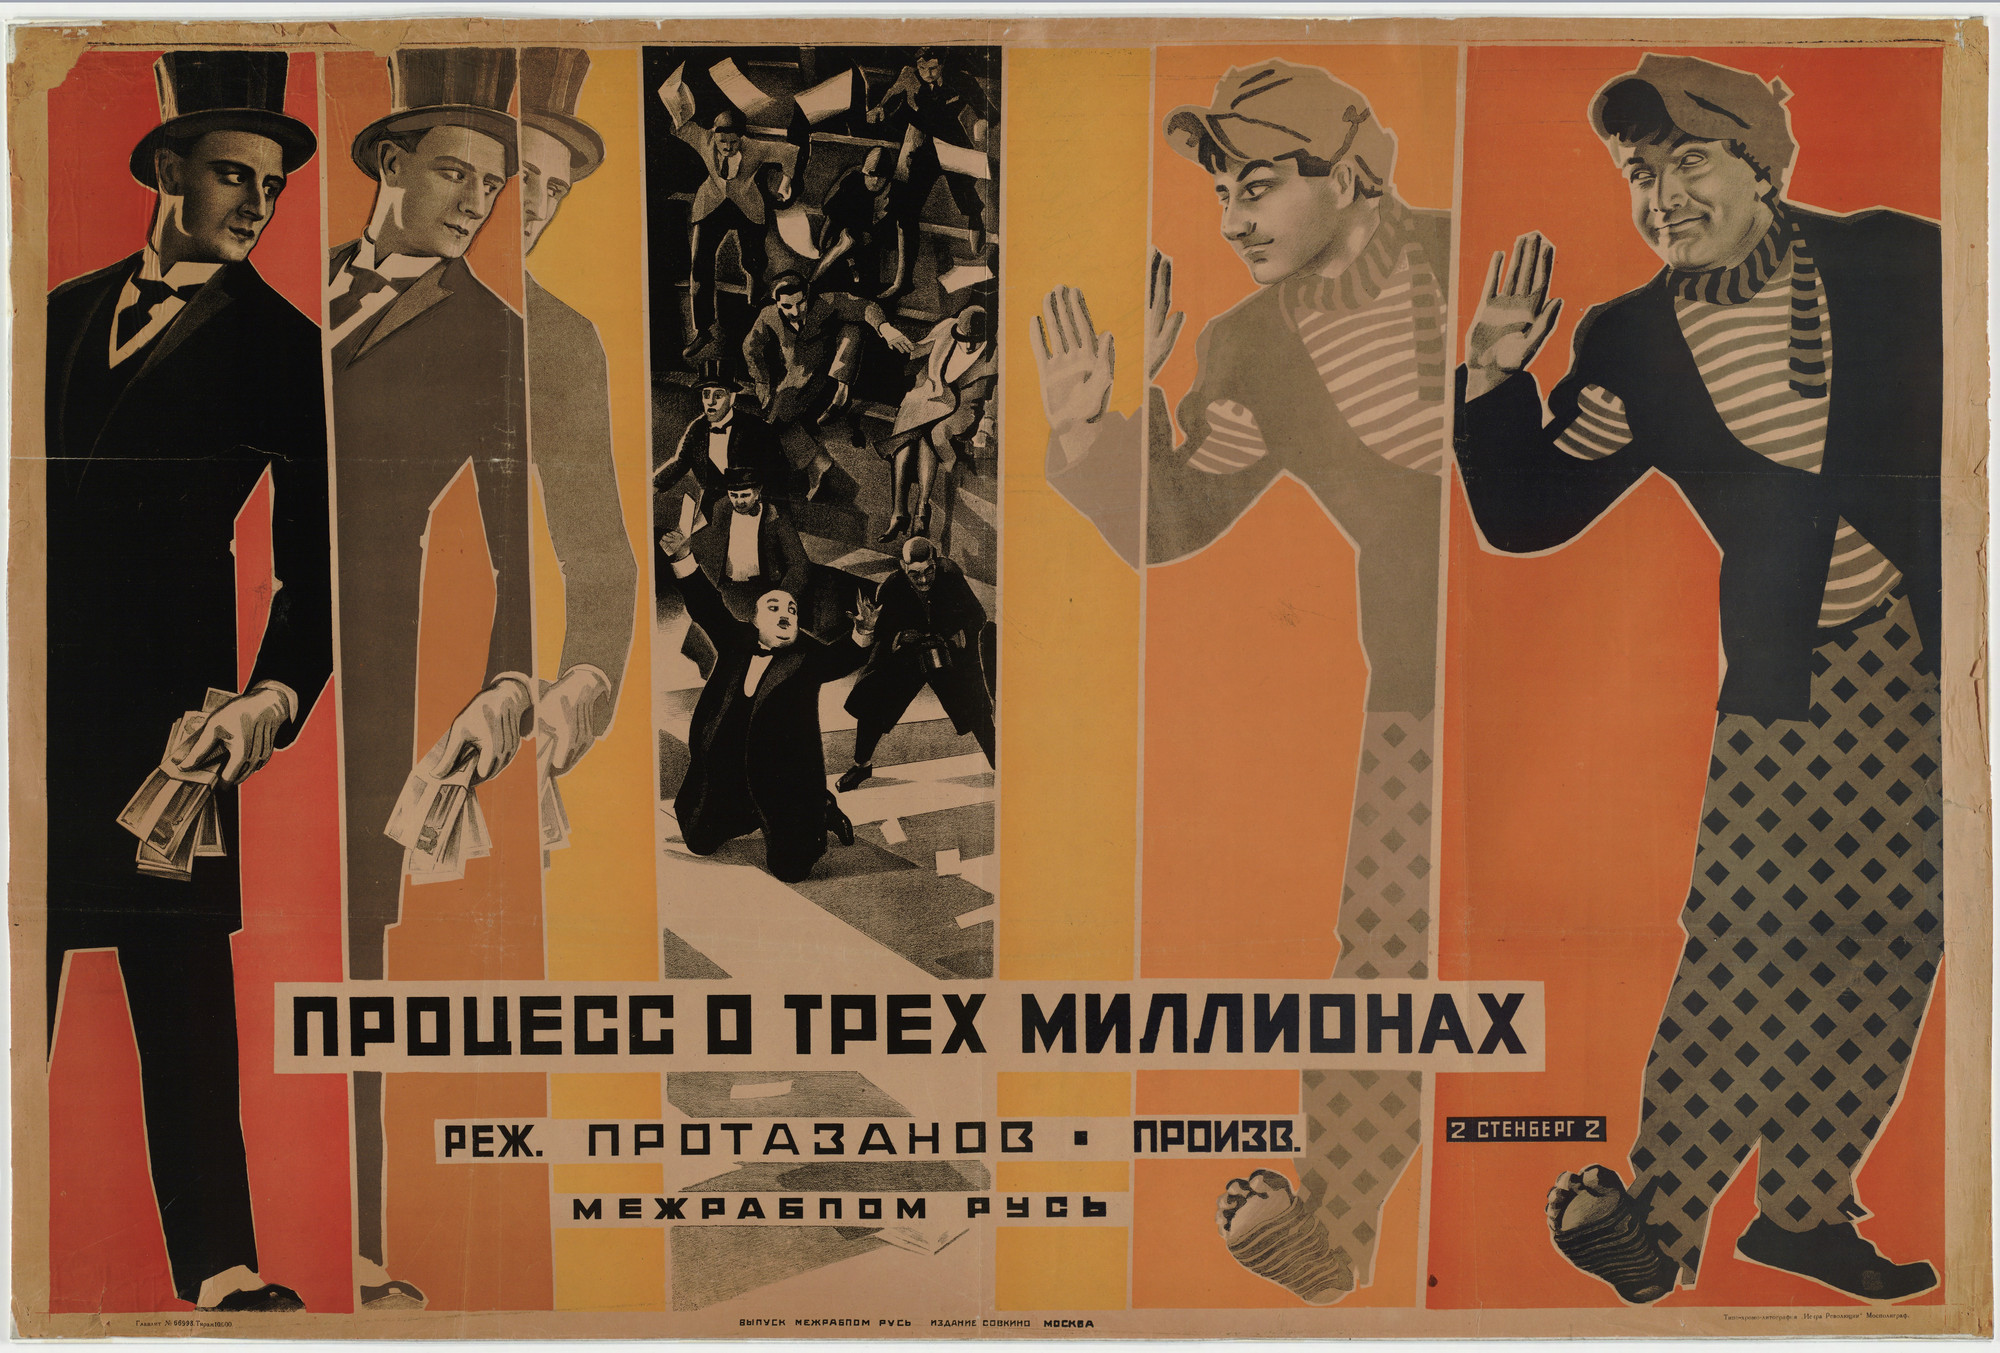 Vladimir Stenberg, Georgii Stenberg. The Three Million Case. 1927